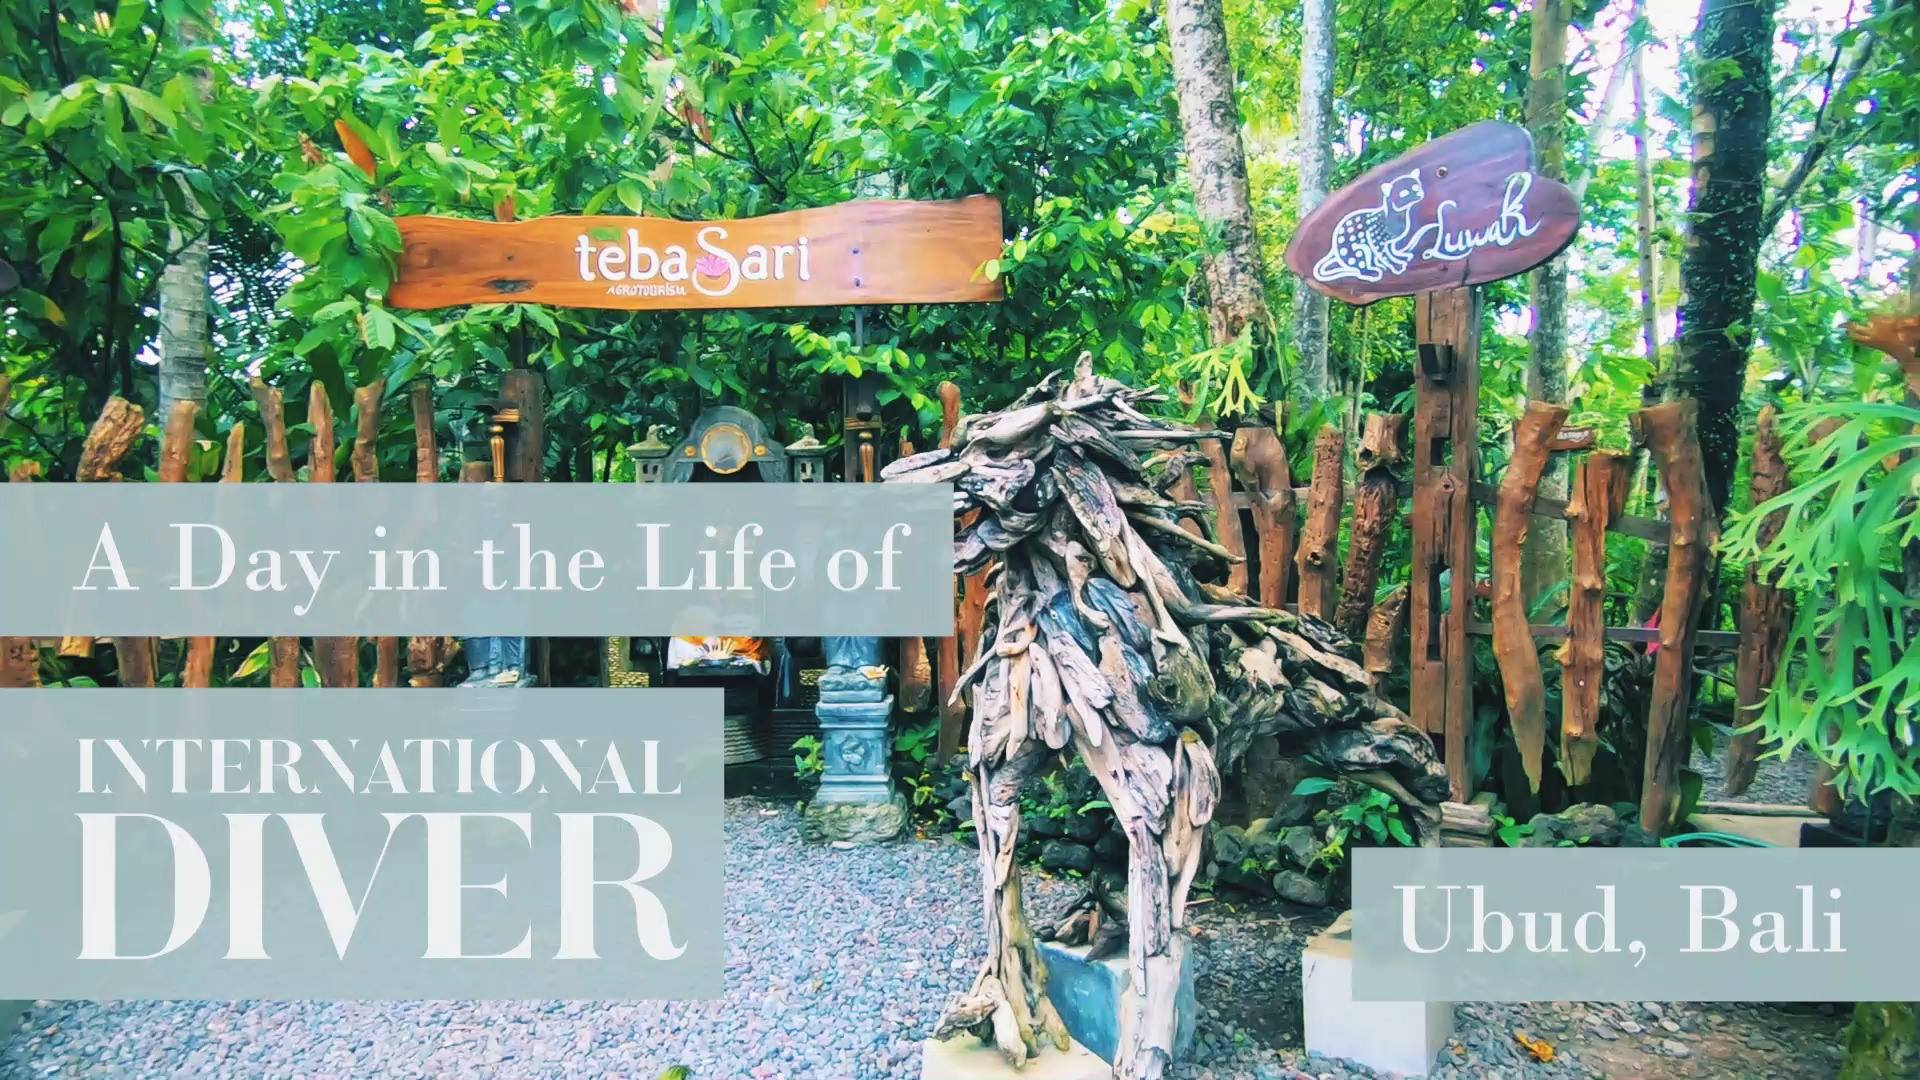 A DAY IN THE LIFE OF INTERNATIONAL DIVER - UBUD, BALI